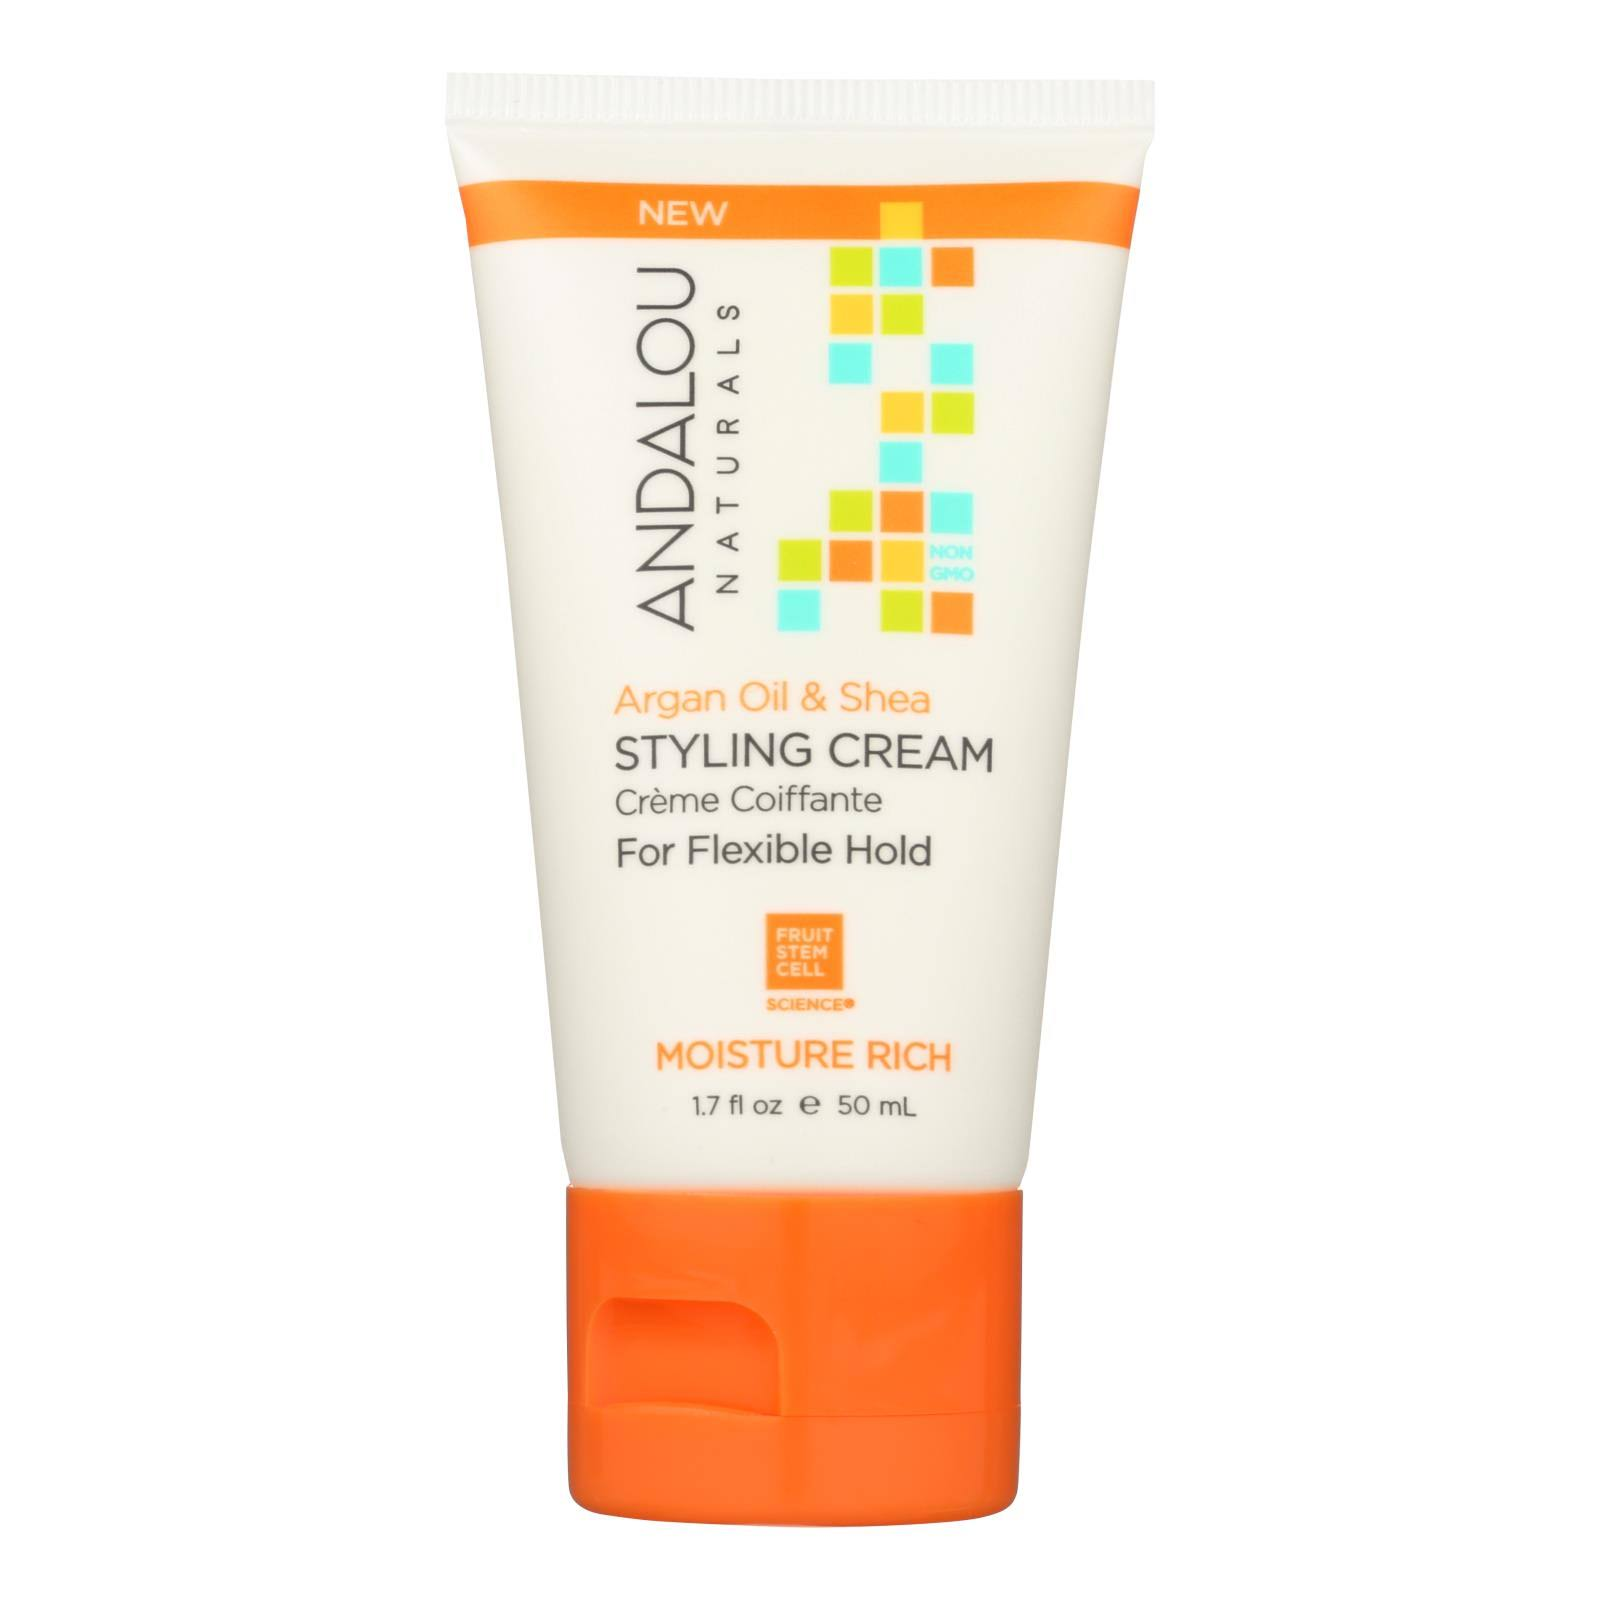 Andalou Naturals Moisture Rich Hair Styling Cream, Argan Oil & Shea - 1.7 fl oz tube